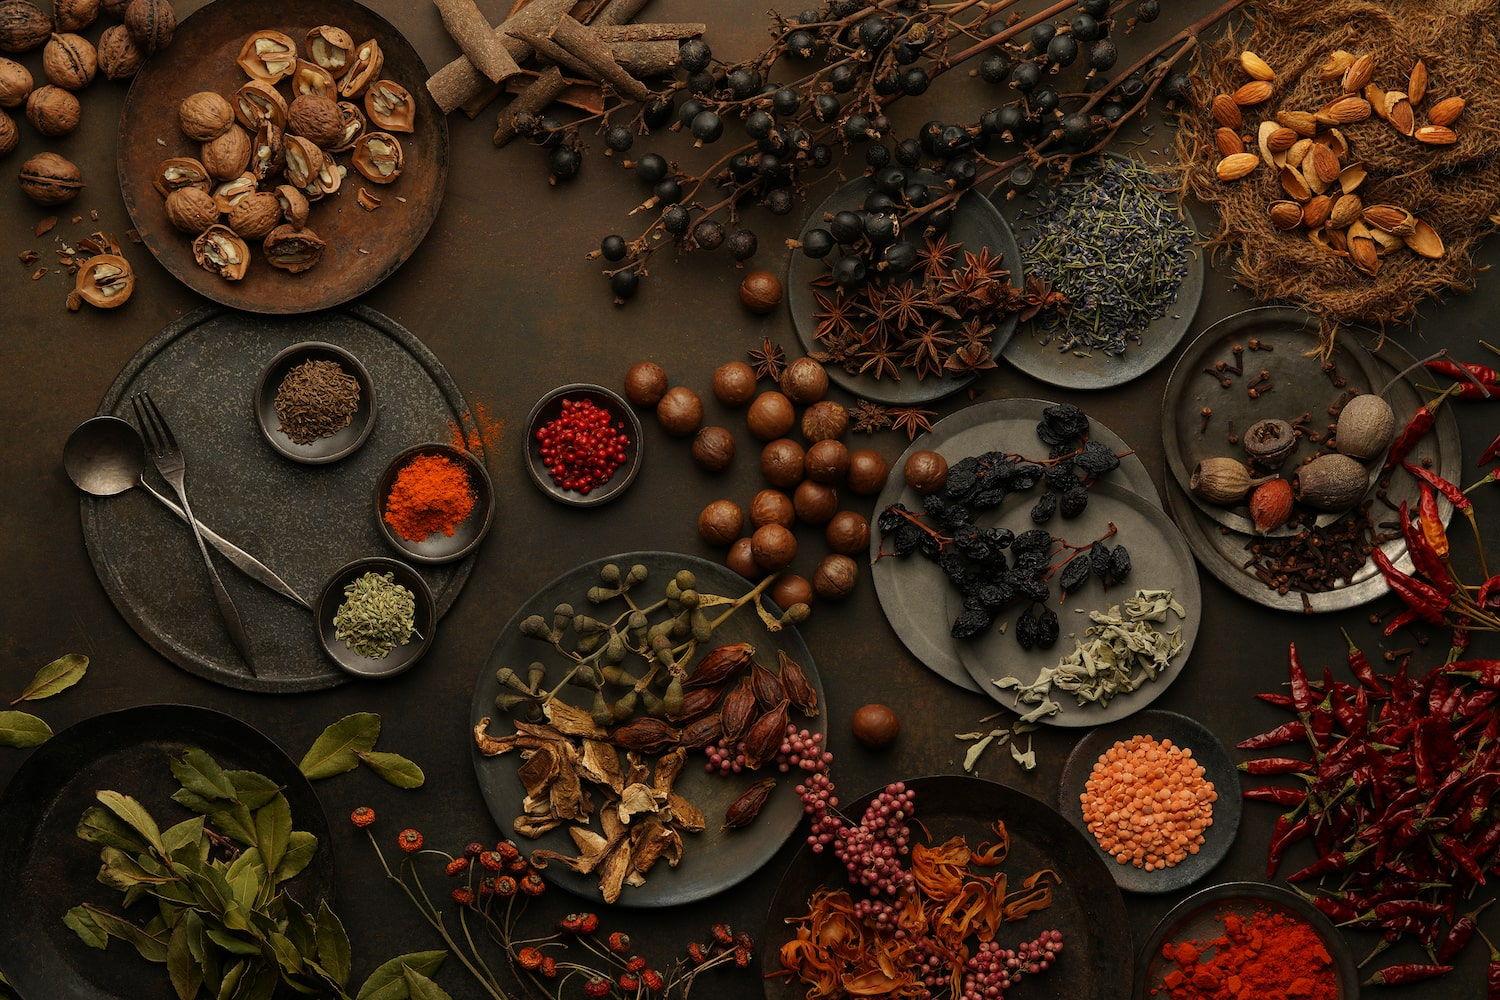 table-setting-earthy-spices-alpha-7RIV